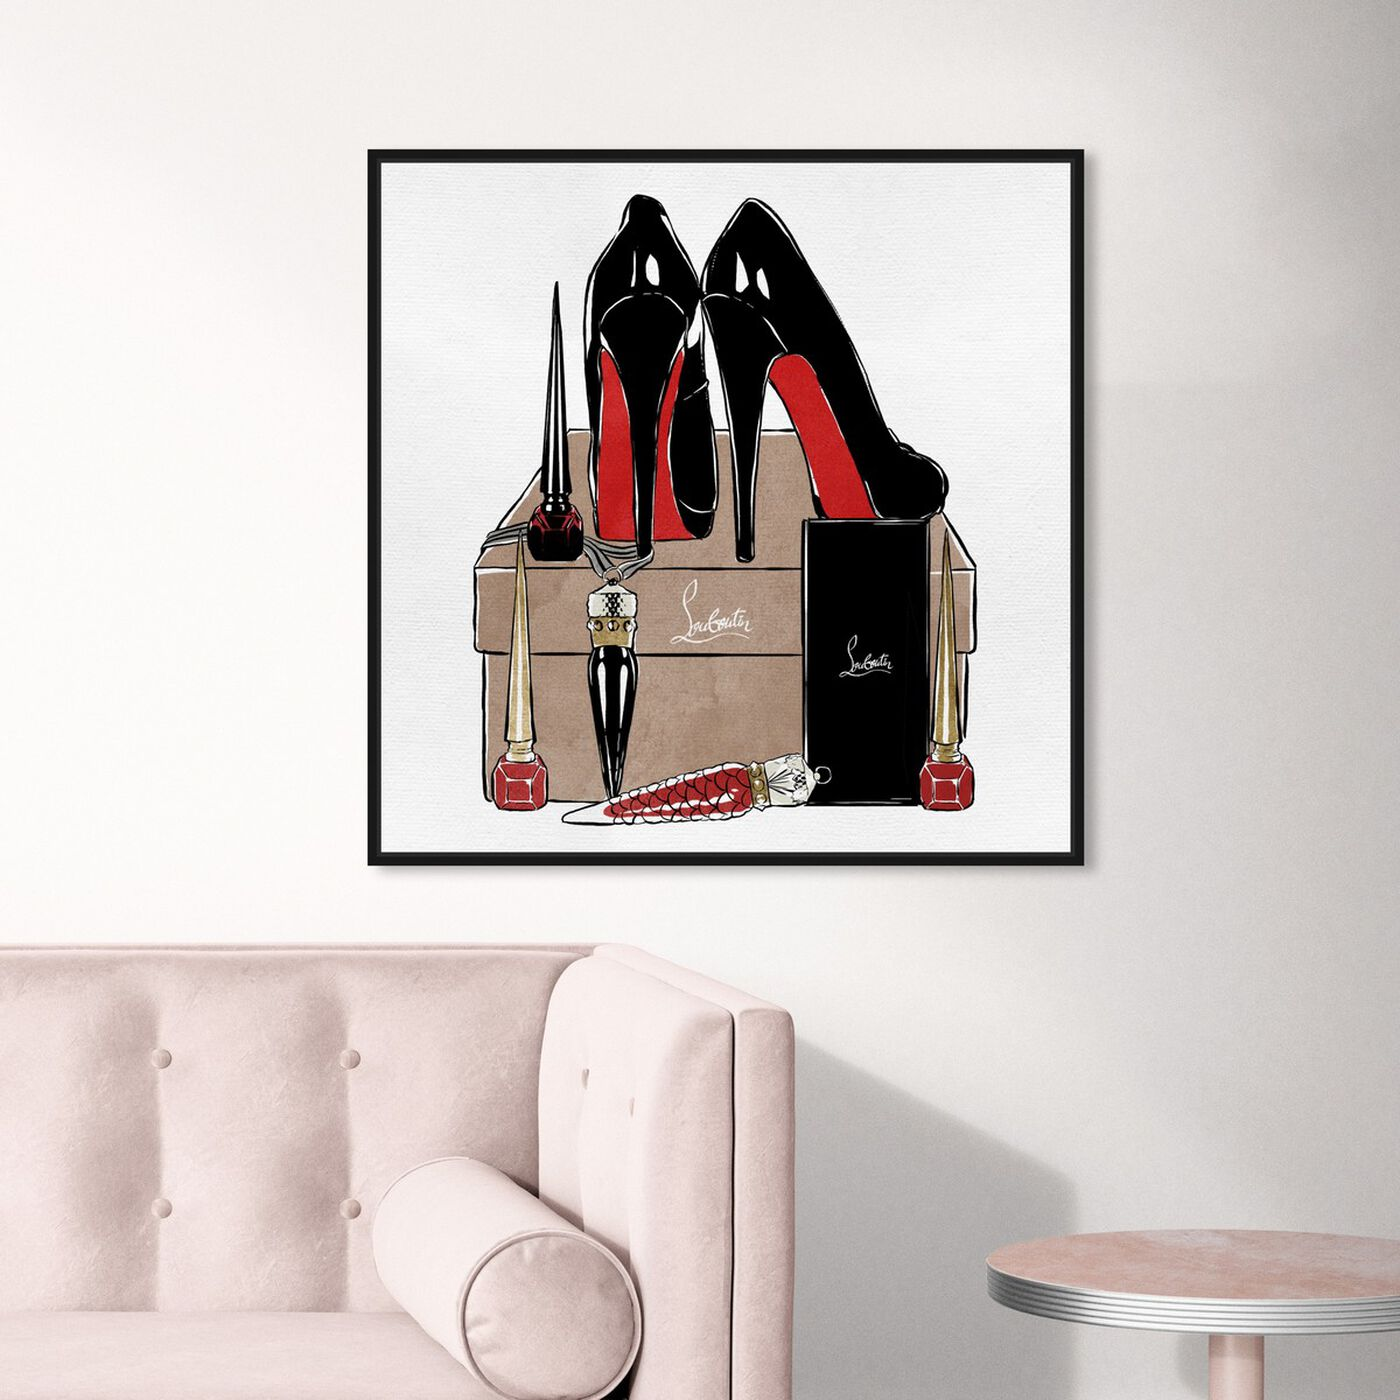 Hanging view of High Heels High Fashion featuring fashion and glam and shoes art.